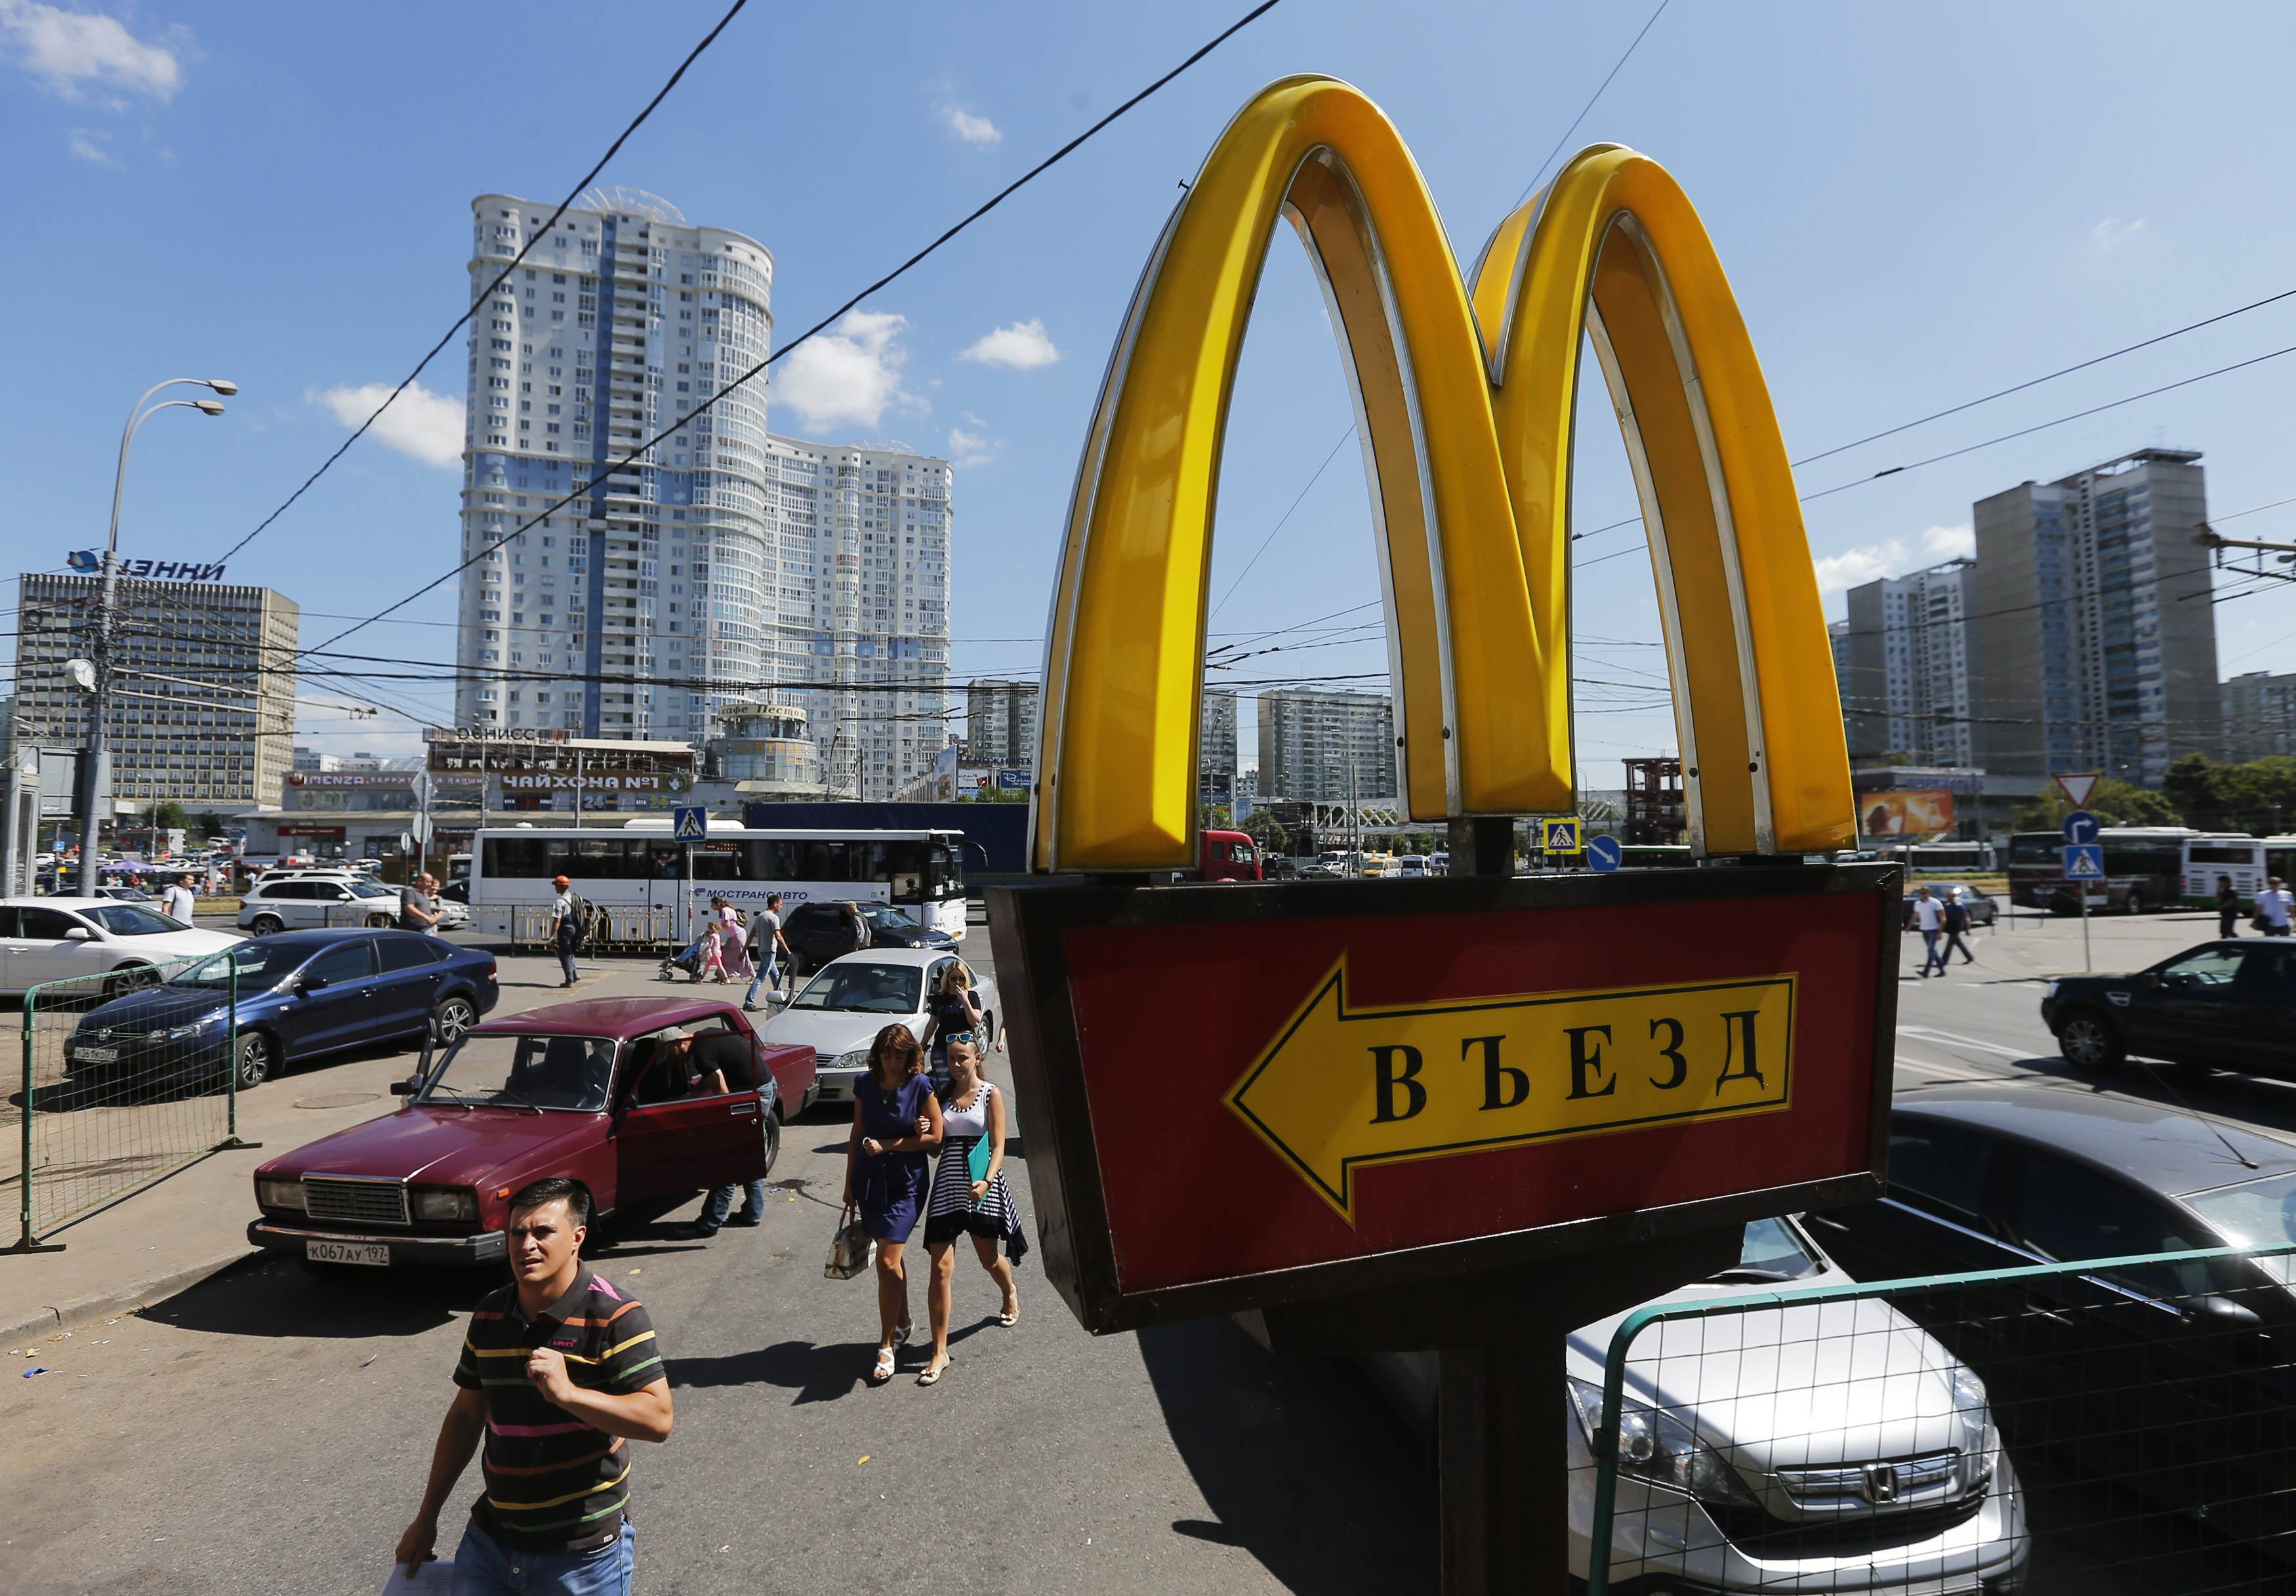 mcdonalds in russia Mcdonald's restaurants operating in russia have announced plans to source all food supplies locally it is aimed at softening the impact of currency swings and import restrictions, tass quotes mcdonald's in russia president khamzat khasbulatov.